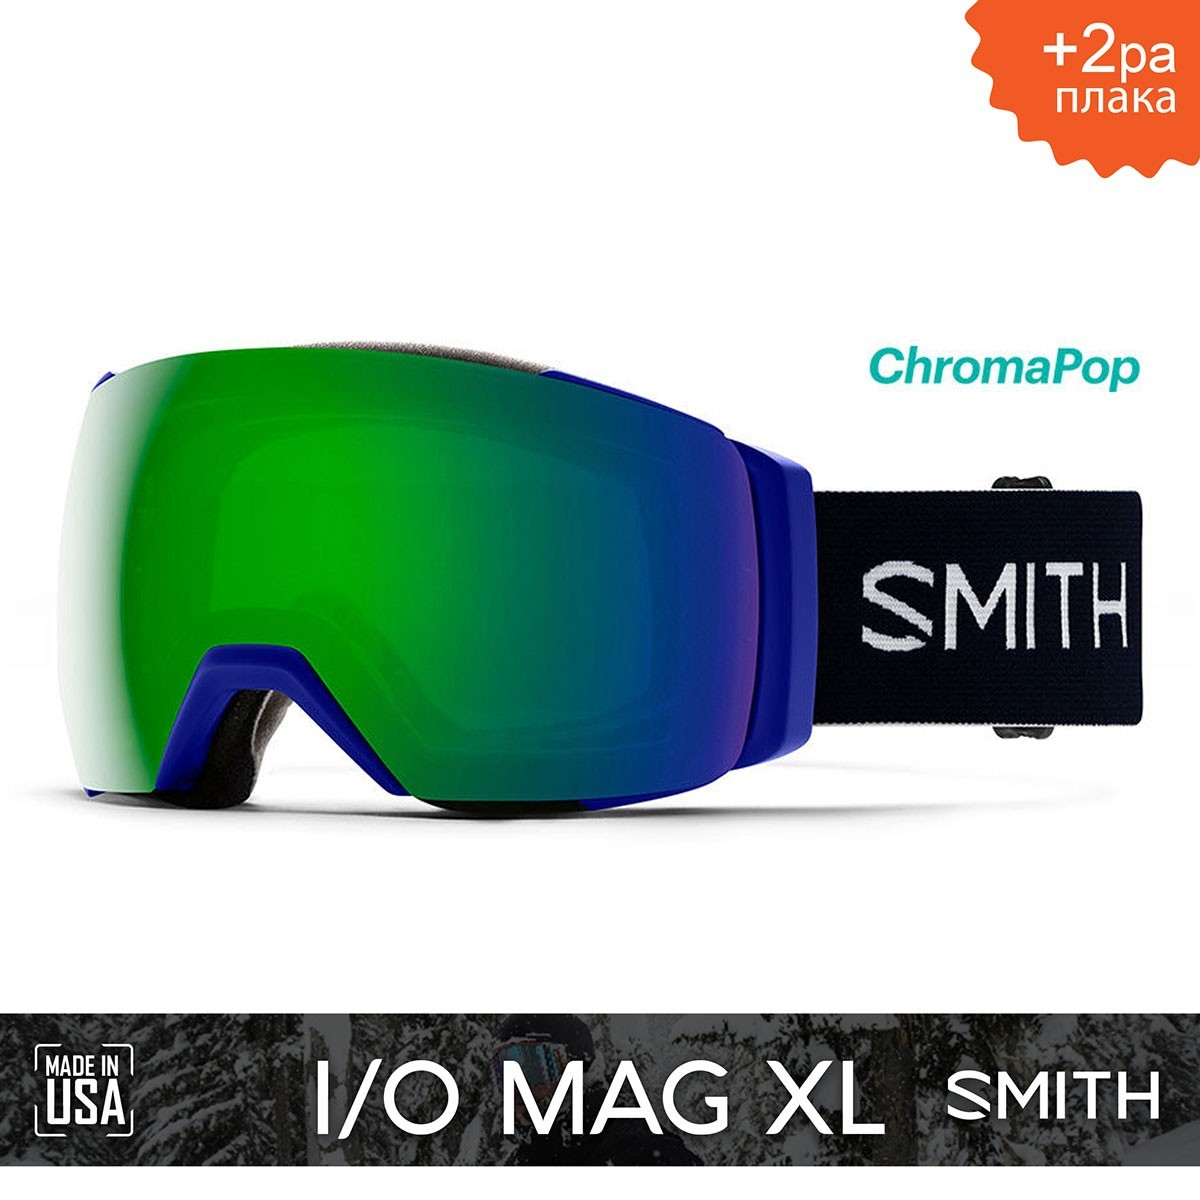 SMITH IO MAG XL Klein Blue | S3 CHROMAPOP Sun Green Mirror - Изображение - AQUAMATRIX